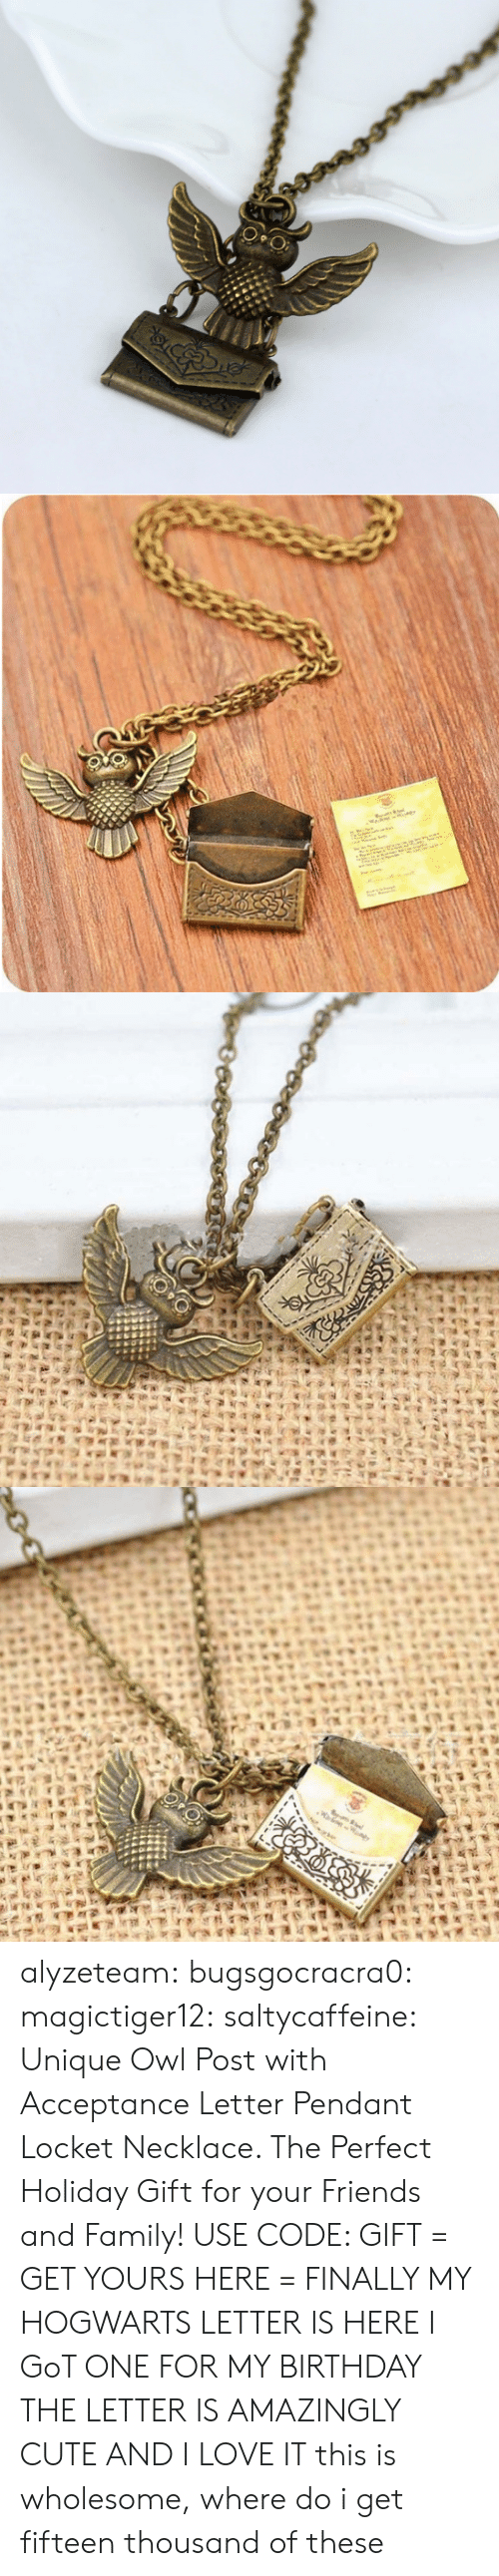 Birthday, Cute, and Family: alyzeteam: bugsgocracra0:  magictiger12:   saltycaffeine:  Unique Owl Post with Acceptance Letter Pendant Locket Necklace. The Perfect Holiday Gift for your Friends and Family! USE CODE: GIFT = GET YOURS HERE =   FINALLY MY HOGWARTS LETTER IS HERE   I GoT ONE FOR MY BIRTHDAY THE LETTER IS AMAZINGLY CUTE AND I LOVE IT  this is wholesome, where do i get fifteen thousand of these